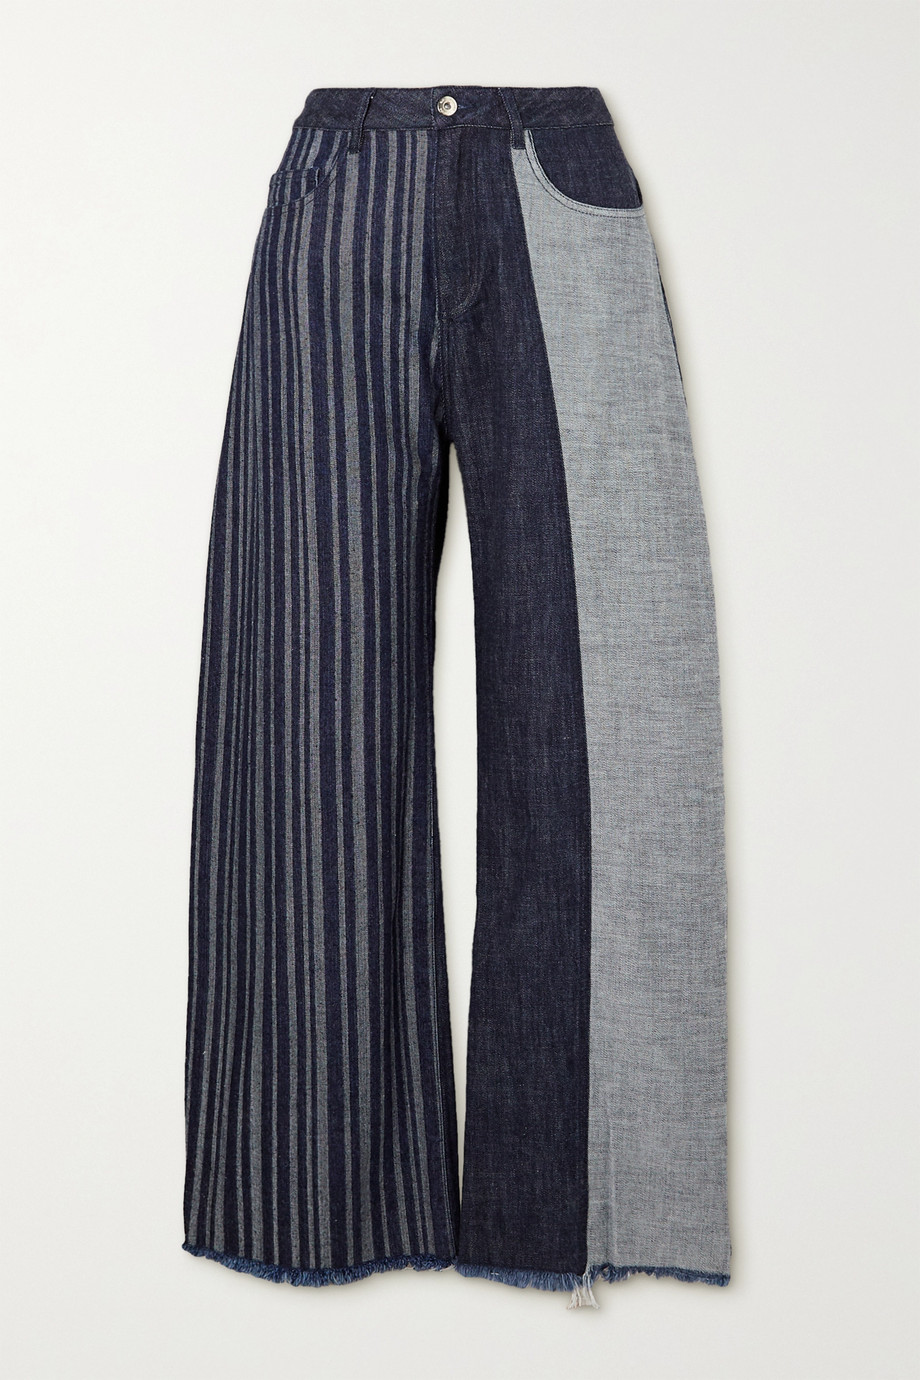 Marques' Almeida + NET SUSTAIN ReM'Ade Boyfriend-Jeans in Patchwork-Optik